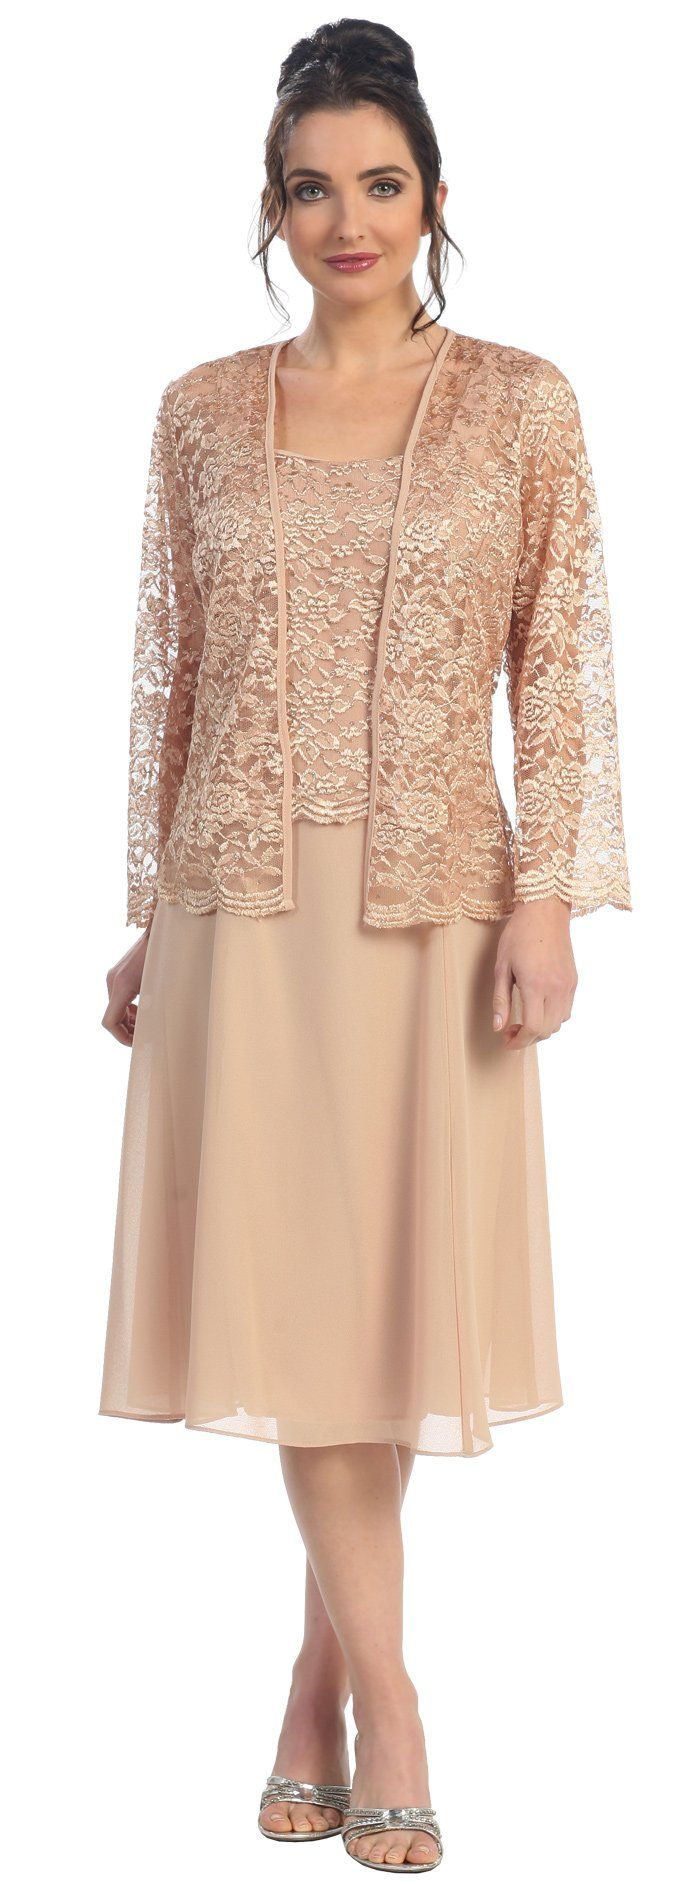 Short Gold Mother of Groom Dress Chiffon Knee Length Lace